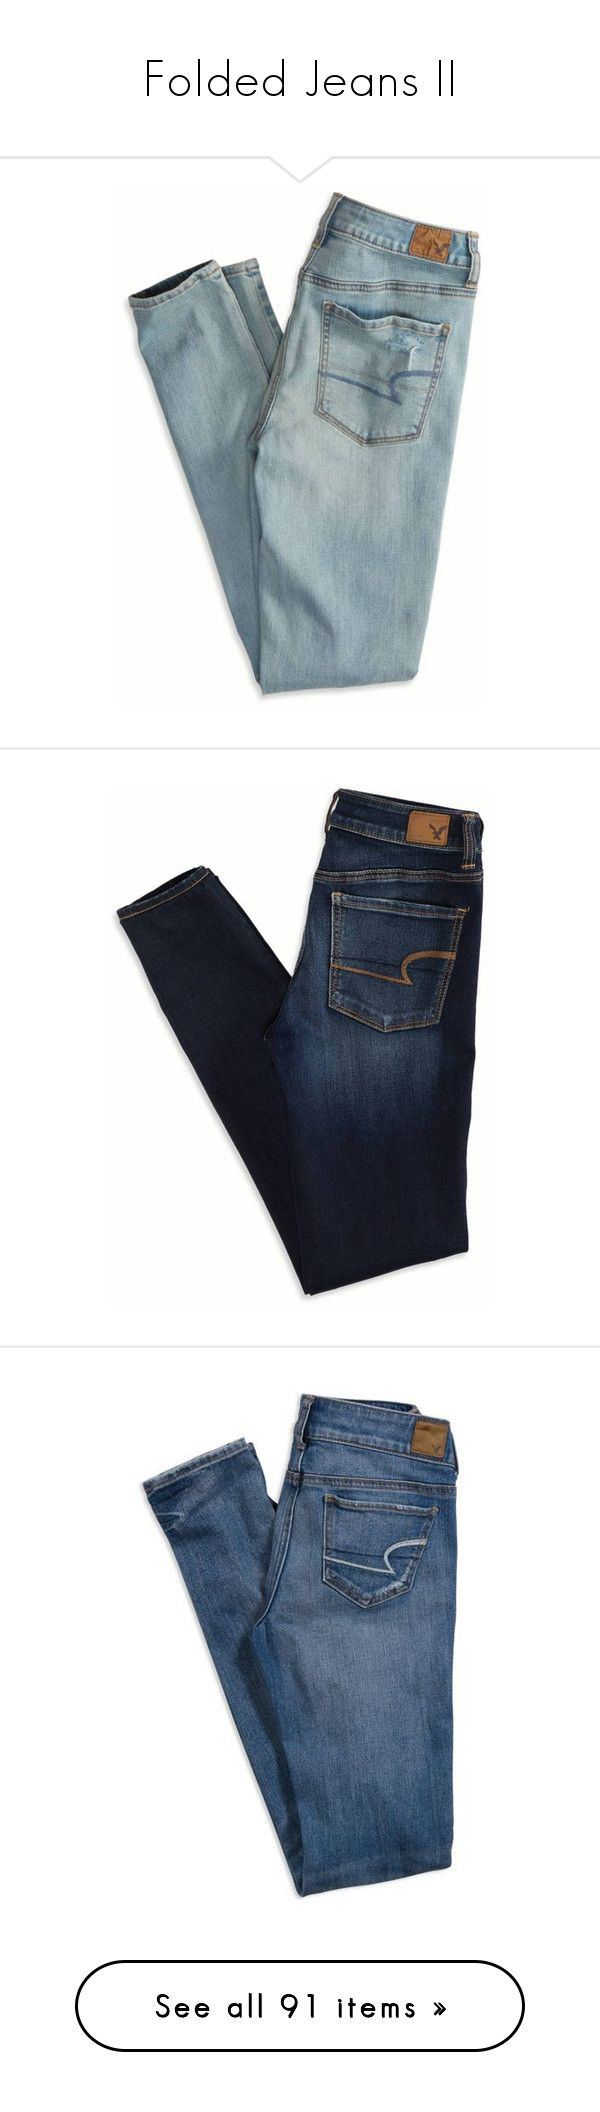 """""""Folded Jeans II"""" by bitbyacullen ❤ liked on Polyvore featuring jeans, pants, bottoms, trousers, american eagle outfitters, folded jeans, pantalones, blue skinny jeans, american eagle outfitters jeans and blue jeans"""